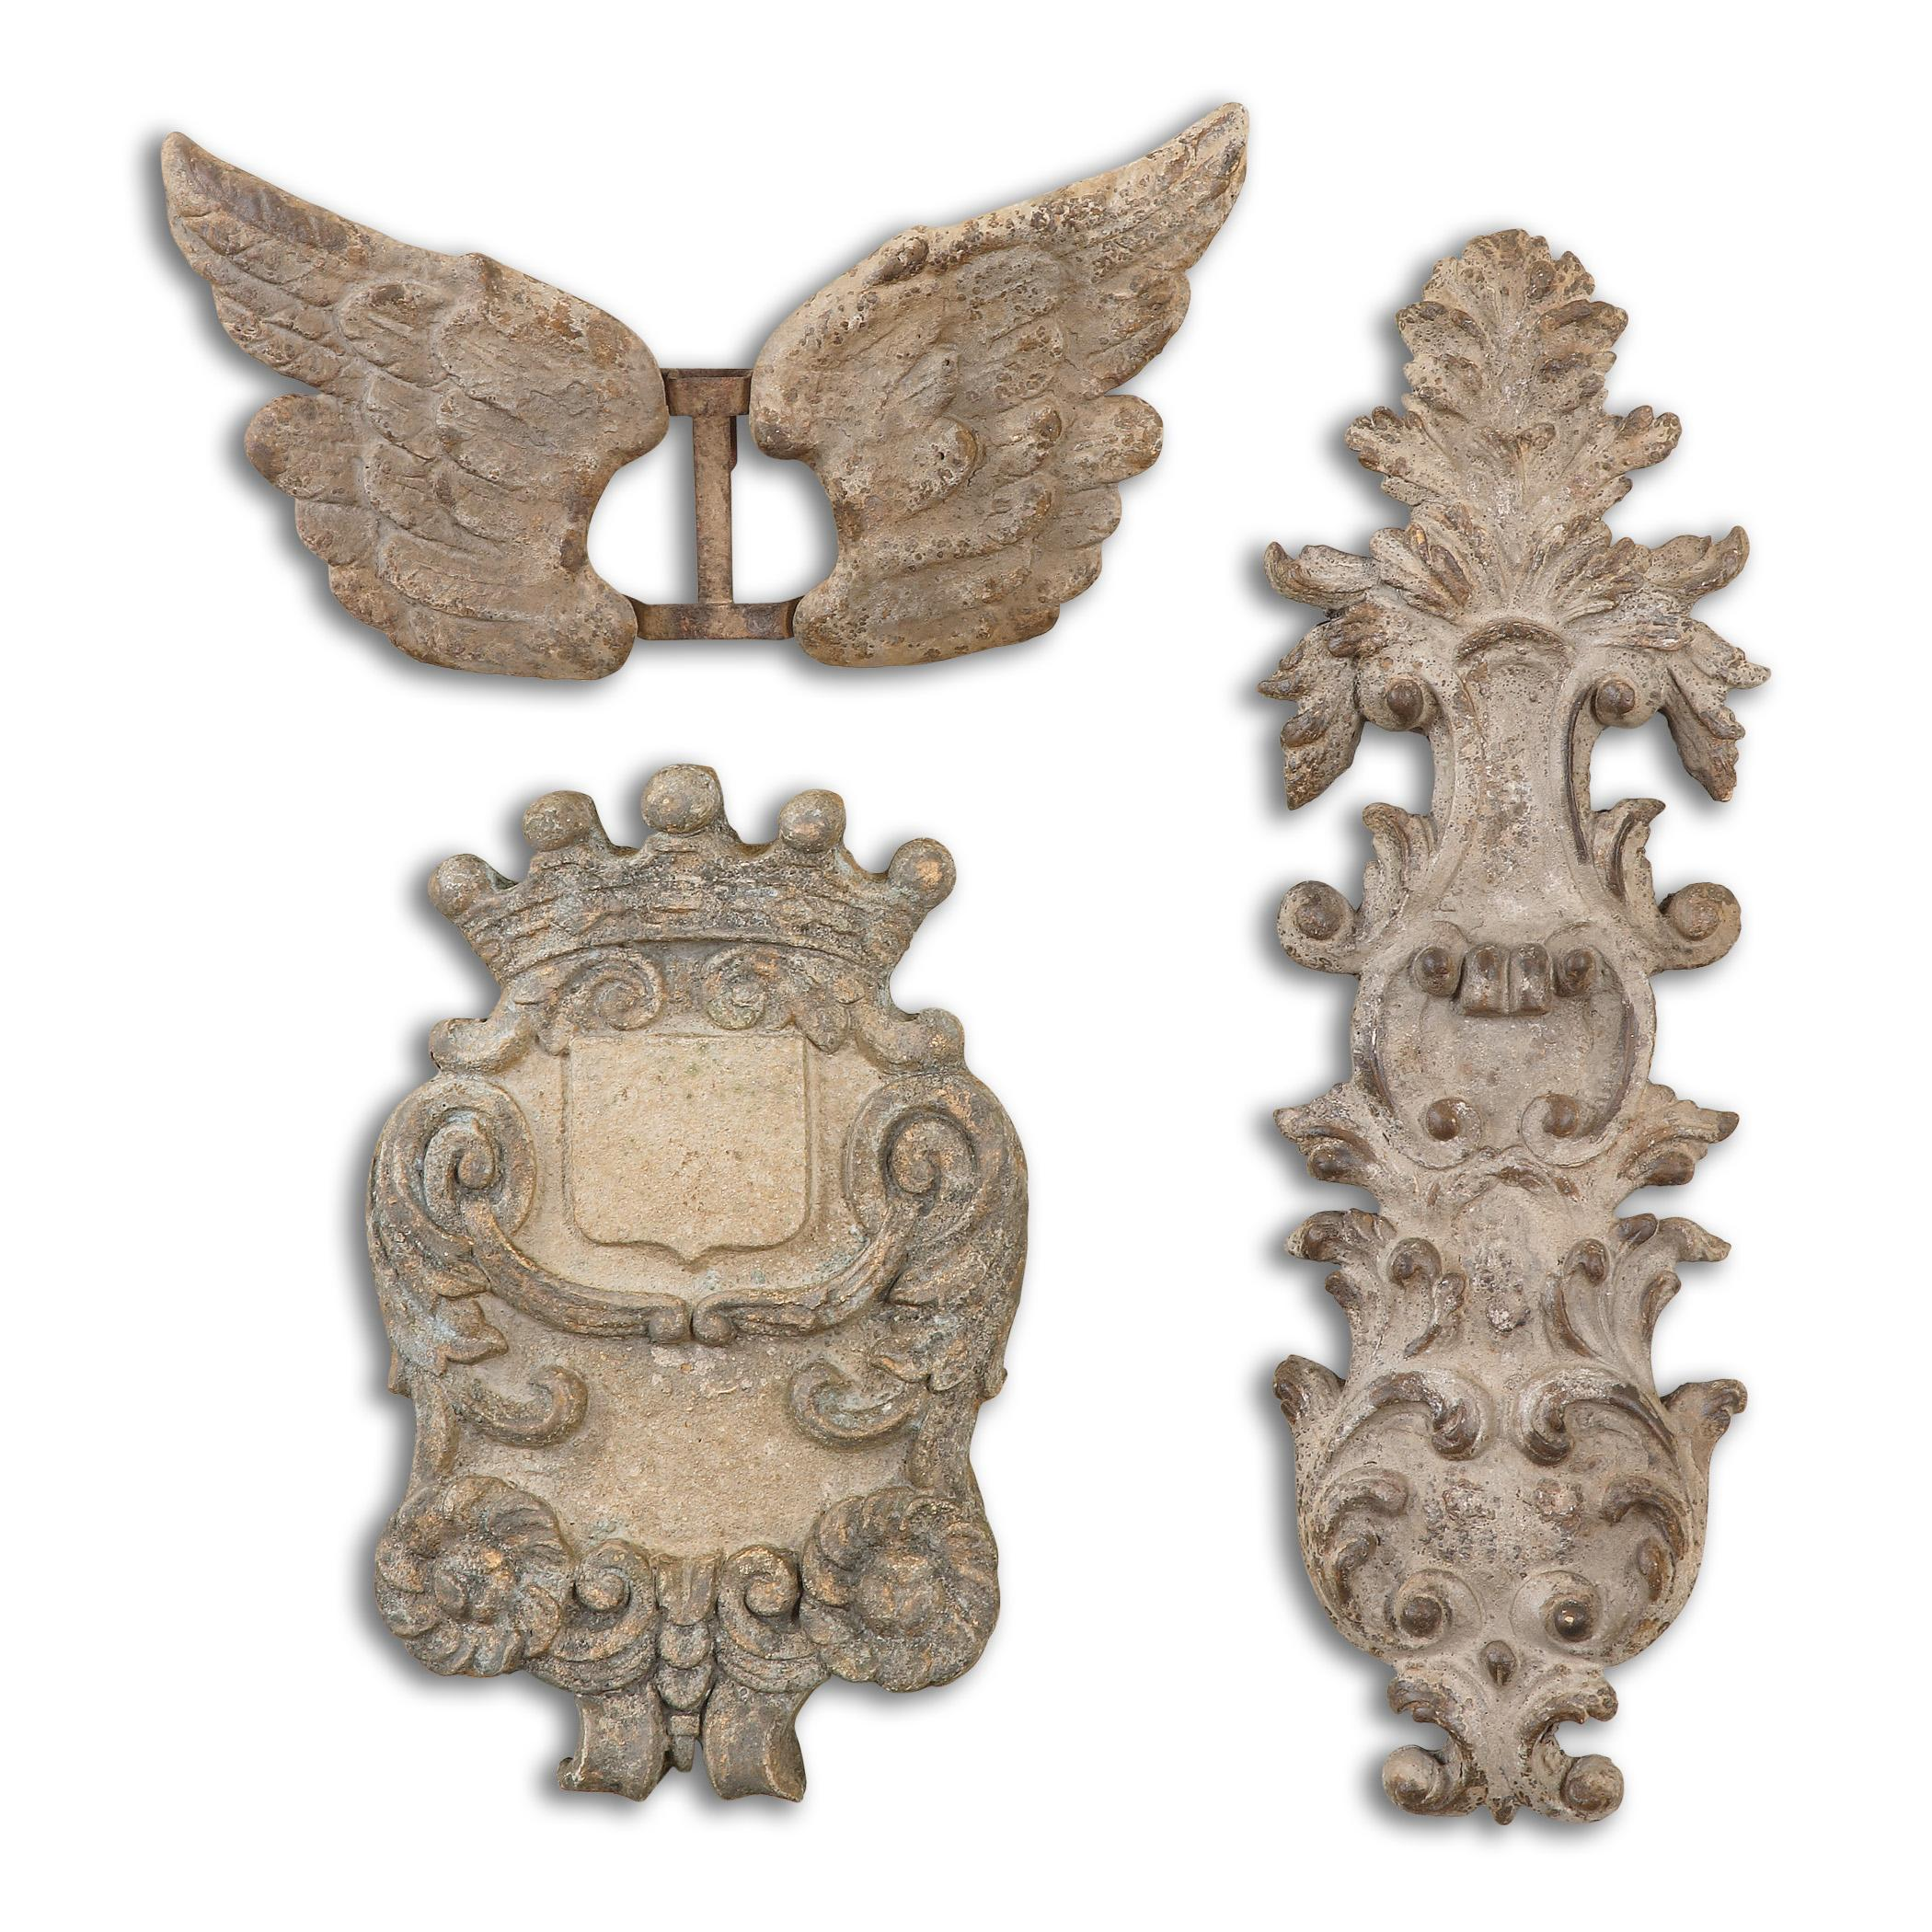 Uttermost Alternative Wall Decor Rustic Artifacts, Set of 3 - Item Number: 13883